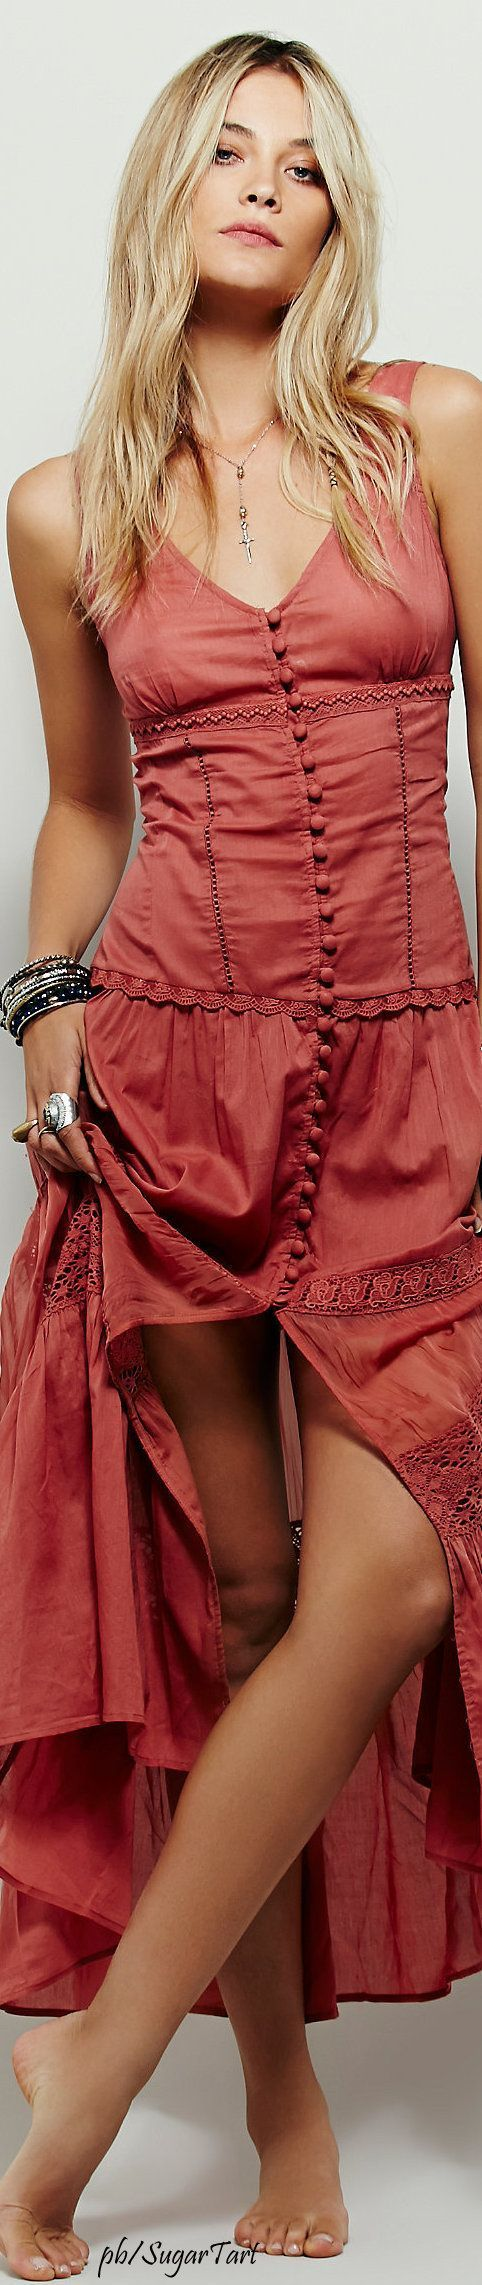 Boho chic bohemian boho style hippy hippie chic bohème  @roressclothes closet ideas #women fashion outfit #clothing style apparel